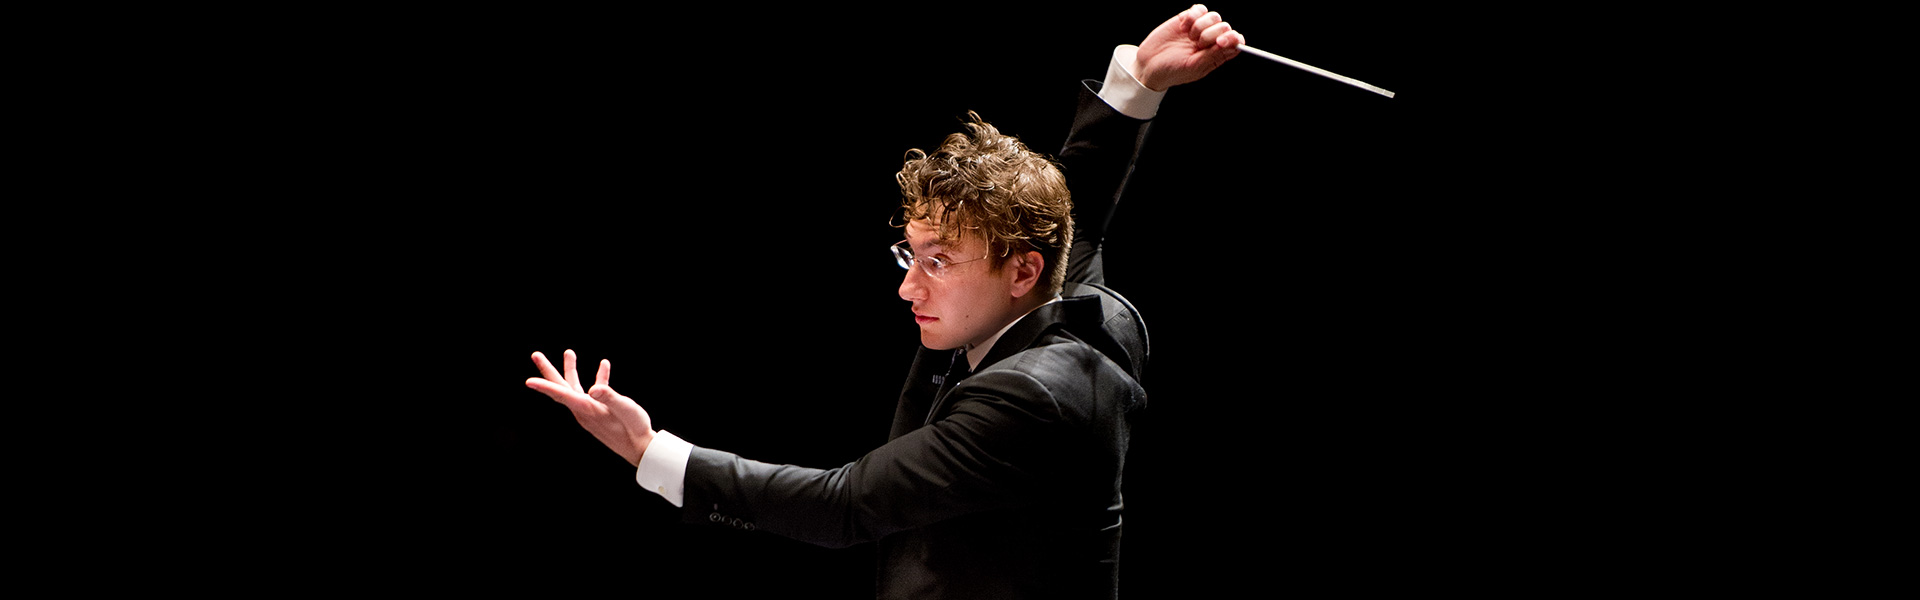 Photo of Teddy Abrams conducting the Louisville Orchestra